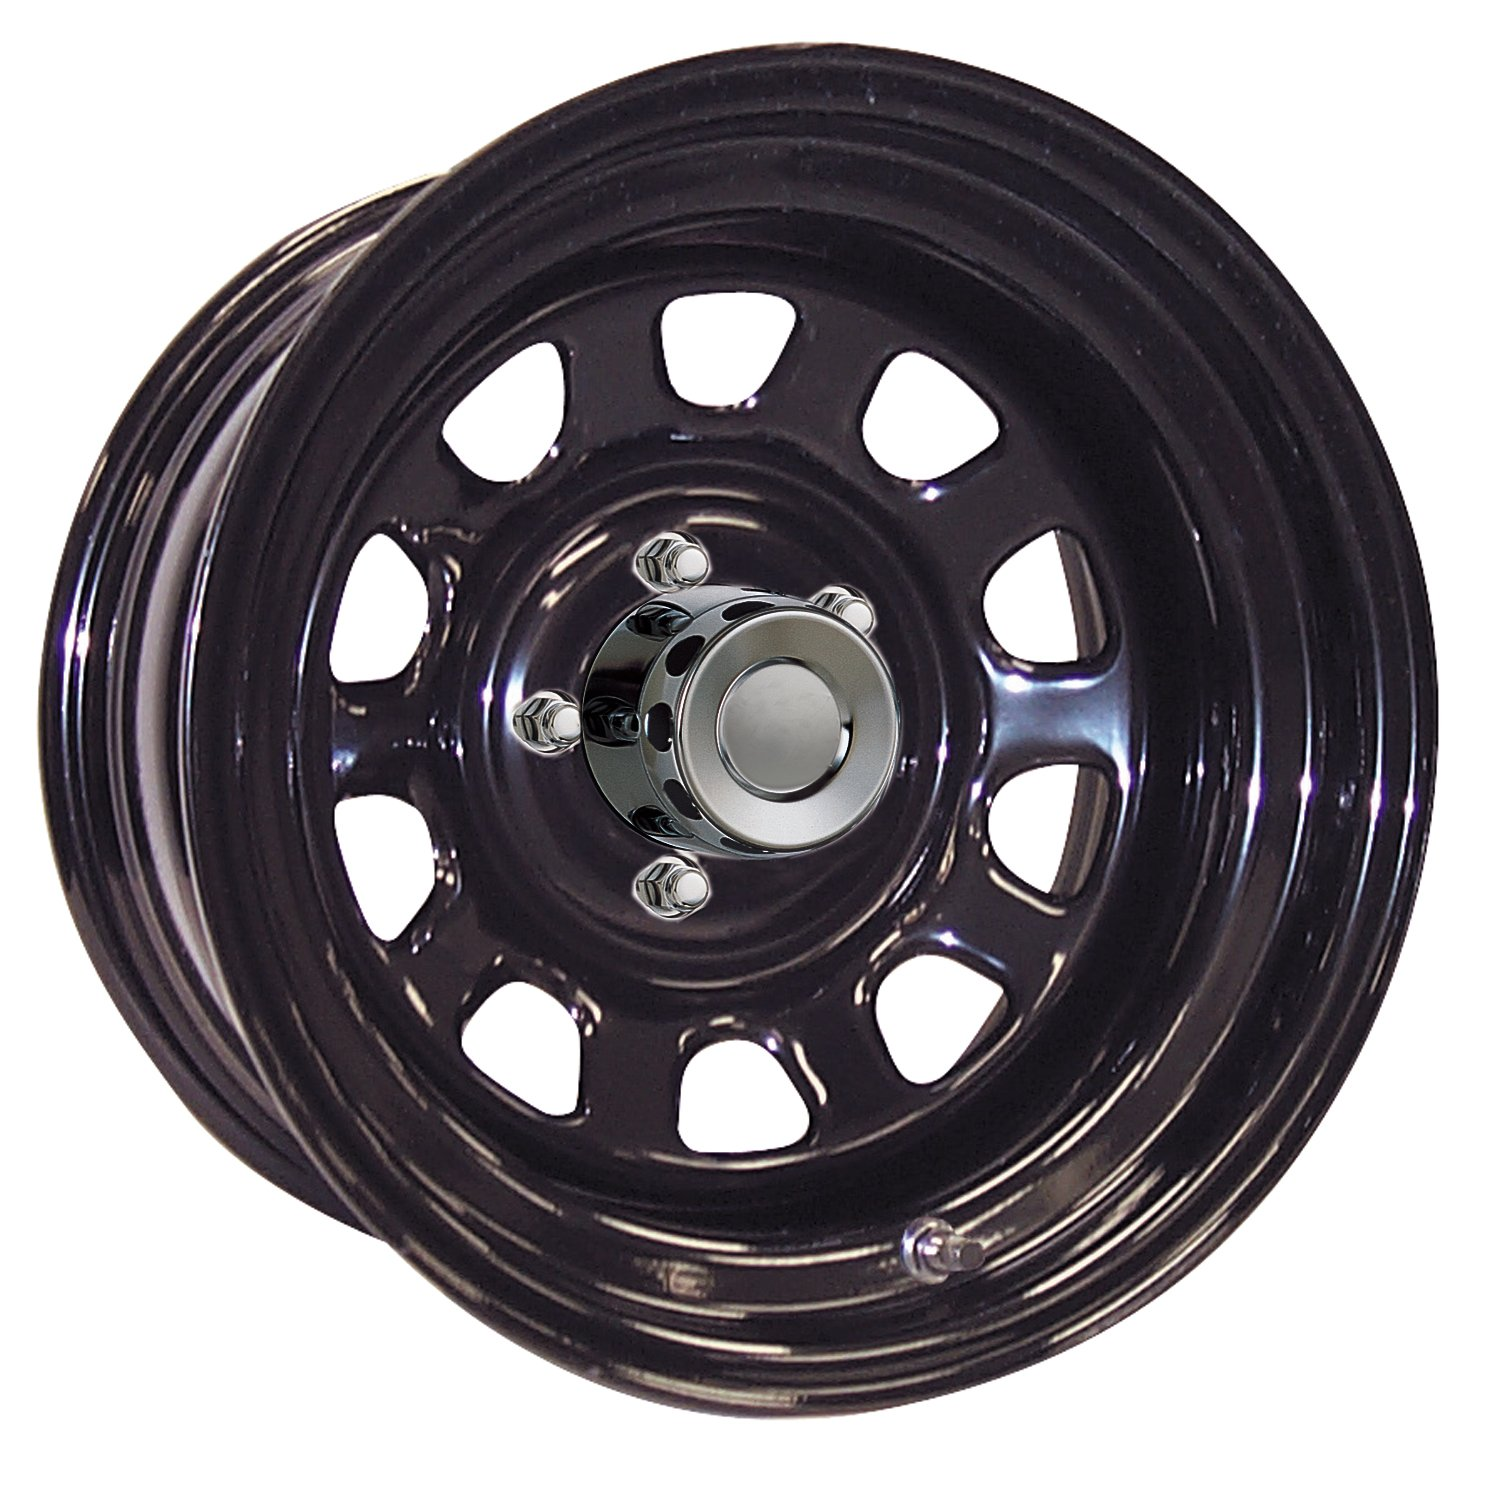 Amazon Pro p Steel Wheels Series 52 Wheel with Gloss Black